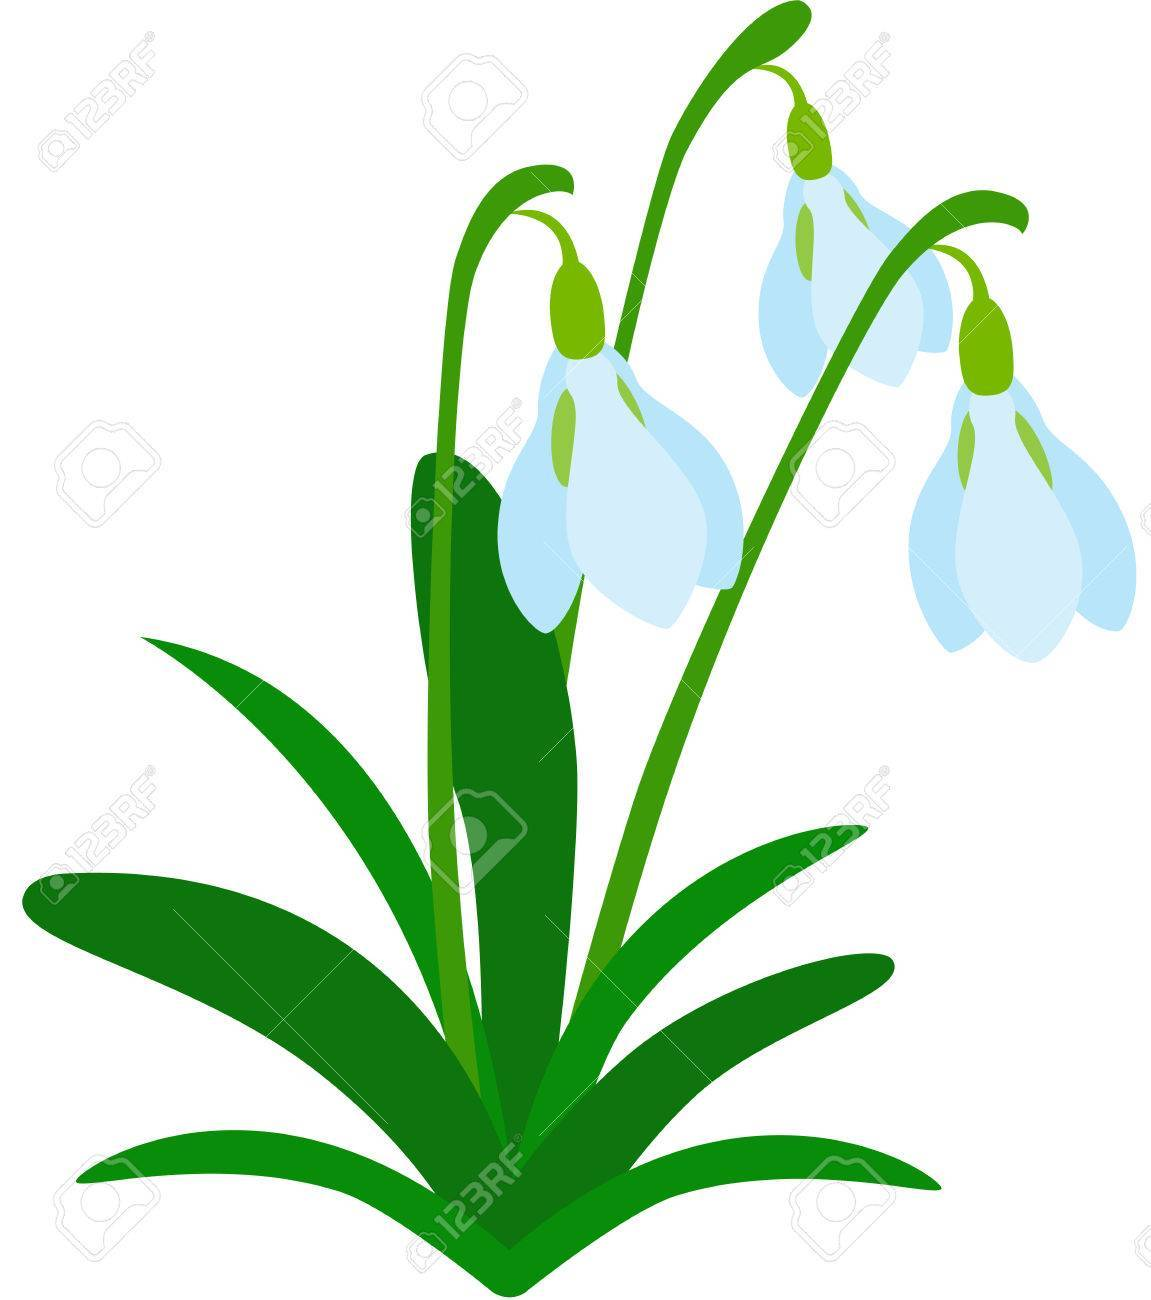 Snowdrop pictures clipart jpg free download Snowdrop clipart 4 » Clipart Portal jpg free download